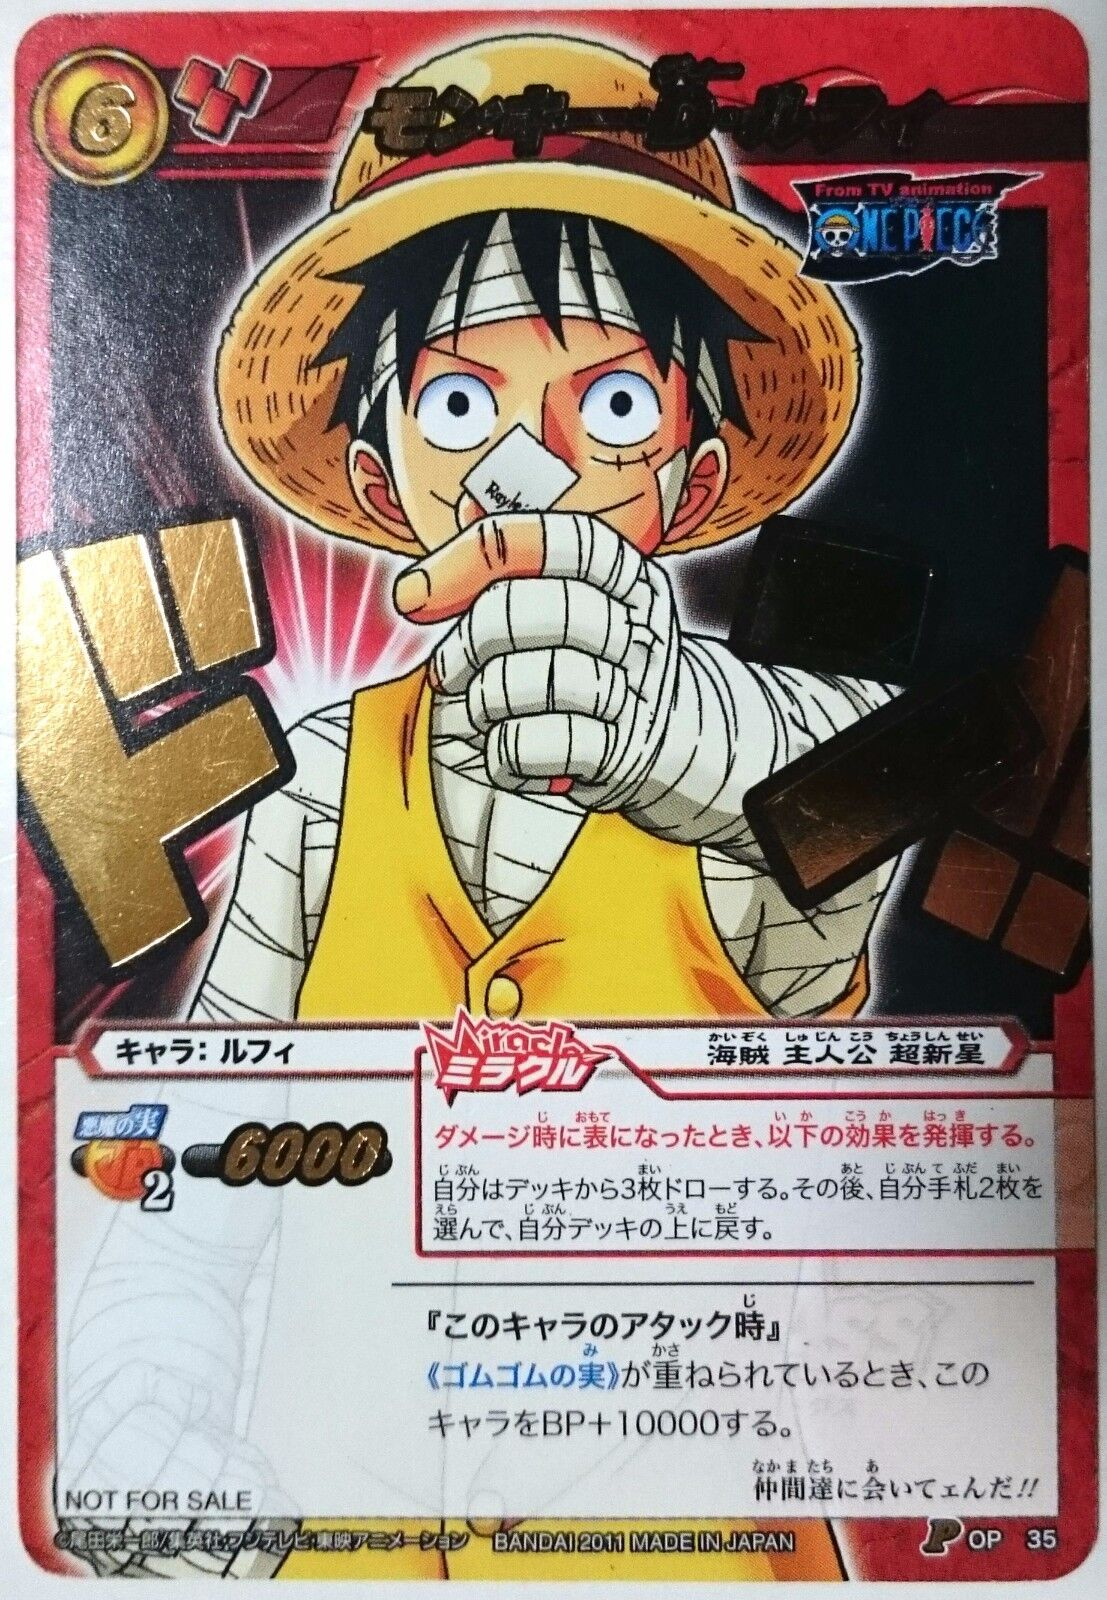 One Piece Miracle Battle Carddass Promo P OP 21 WB Luffy White Box version